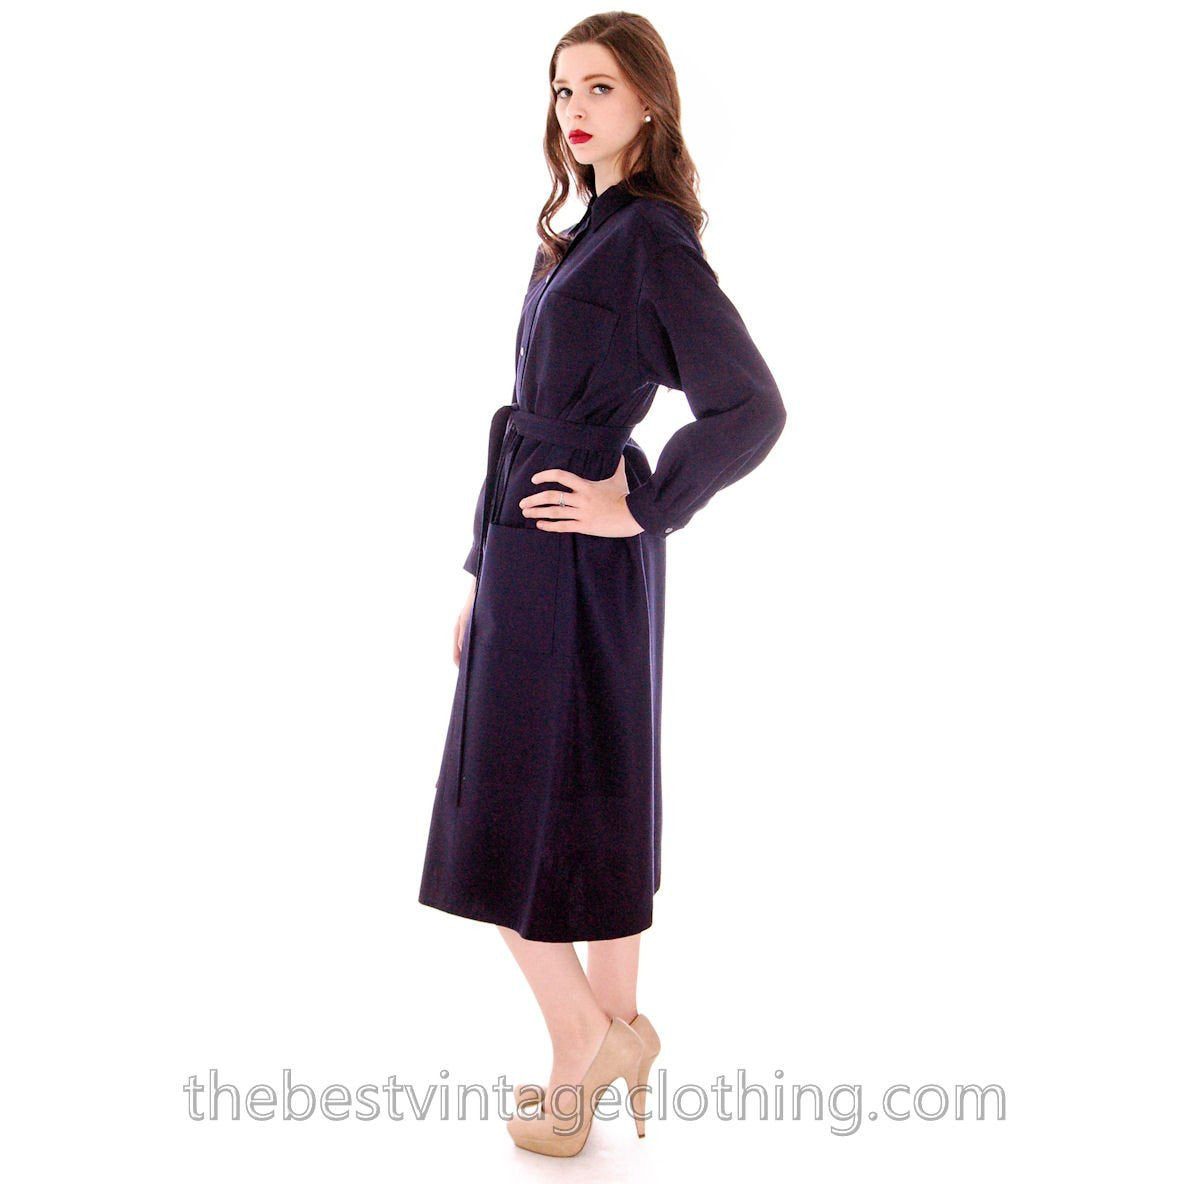 Vintage Vuokko Coat Dress Navy Fine Wool Mod Style 4 Pocket  Pattern L 1970s - The Best Vintage Clothing  - 2